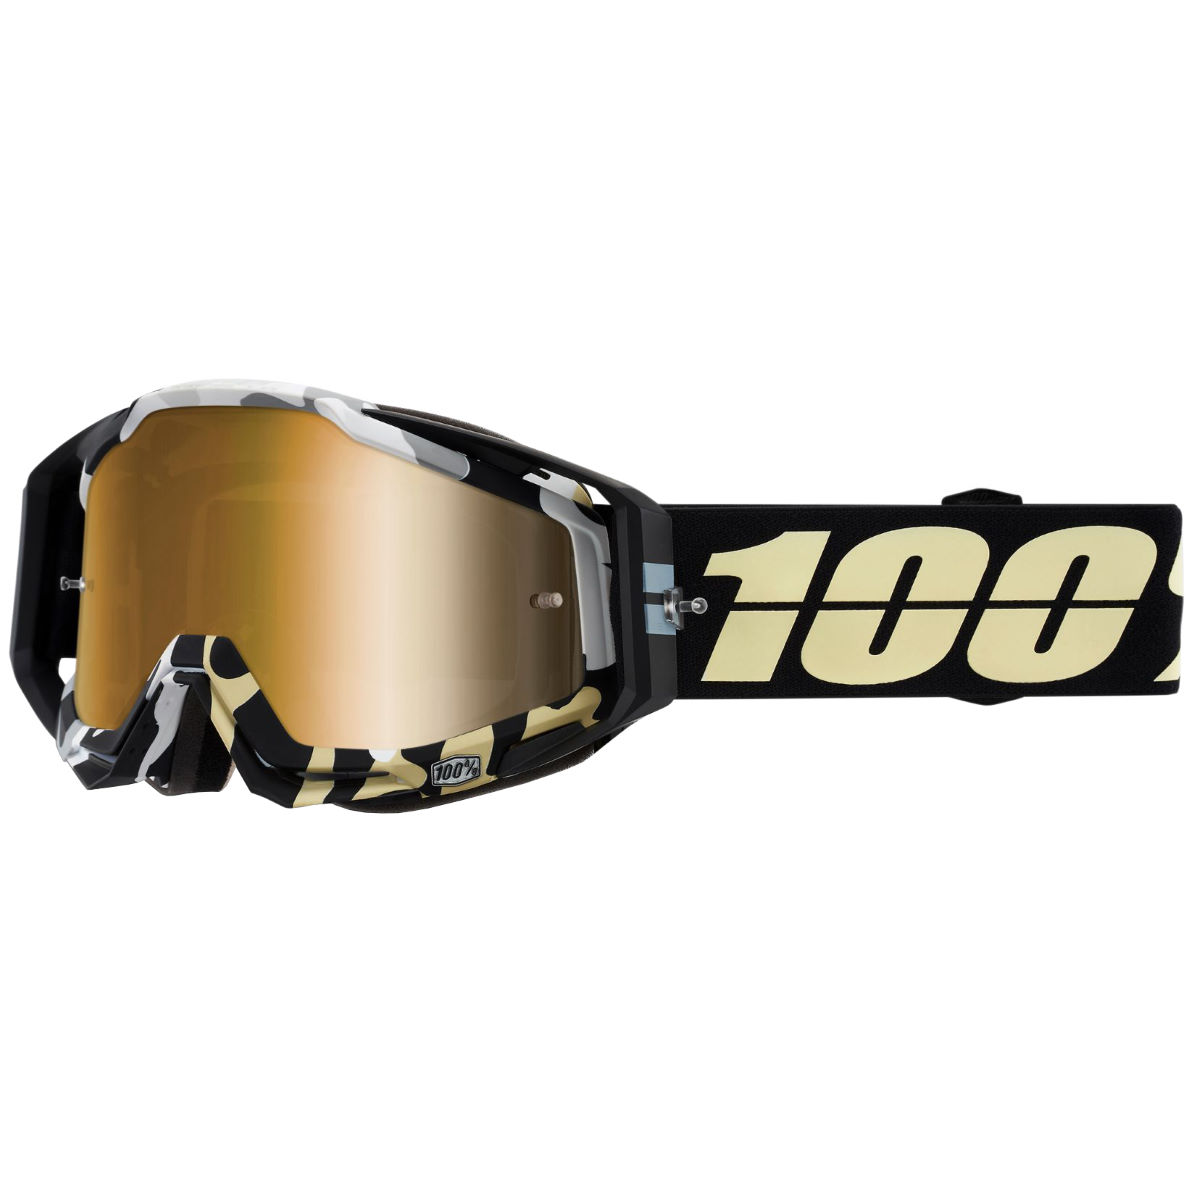 100% Racecraft Goggle Mirror Gold Lens - One Size Black/zebra